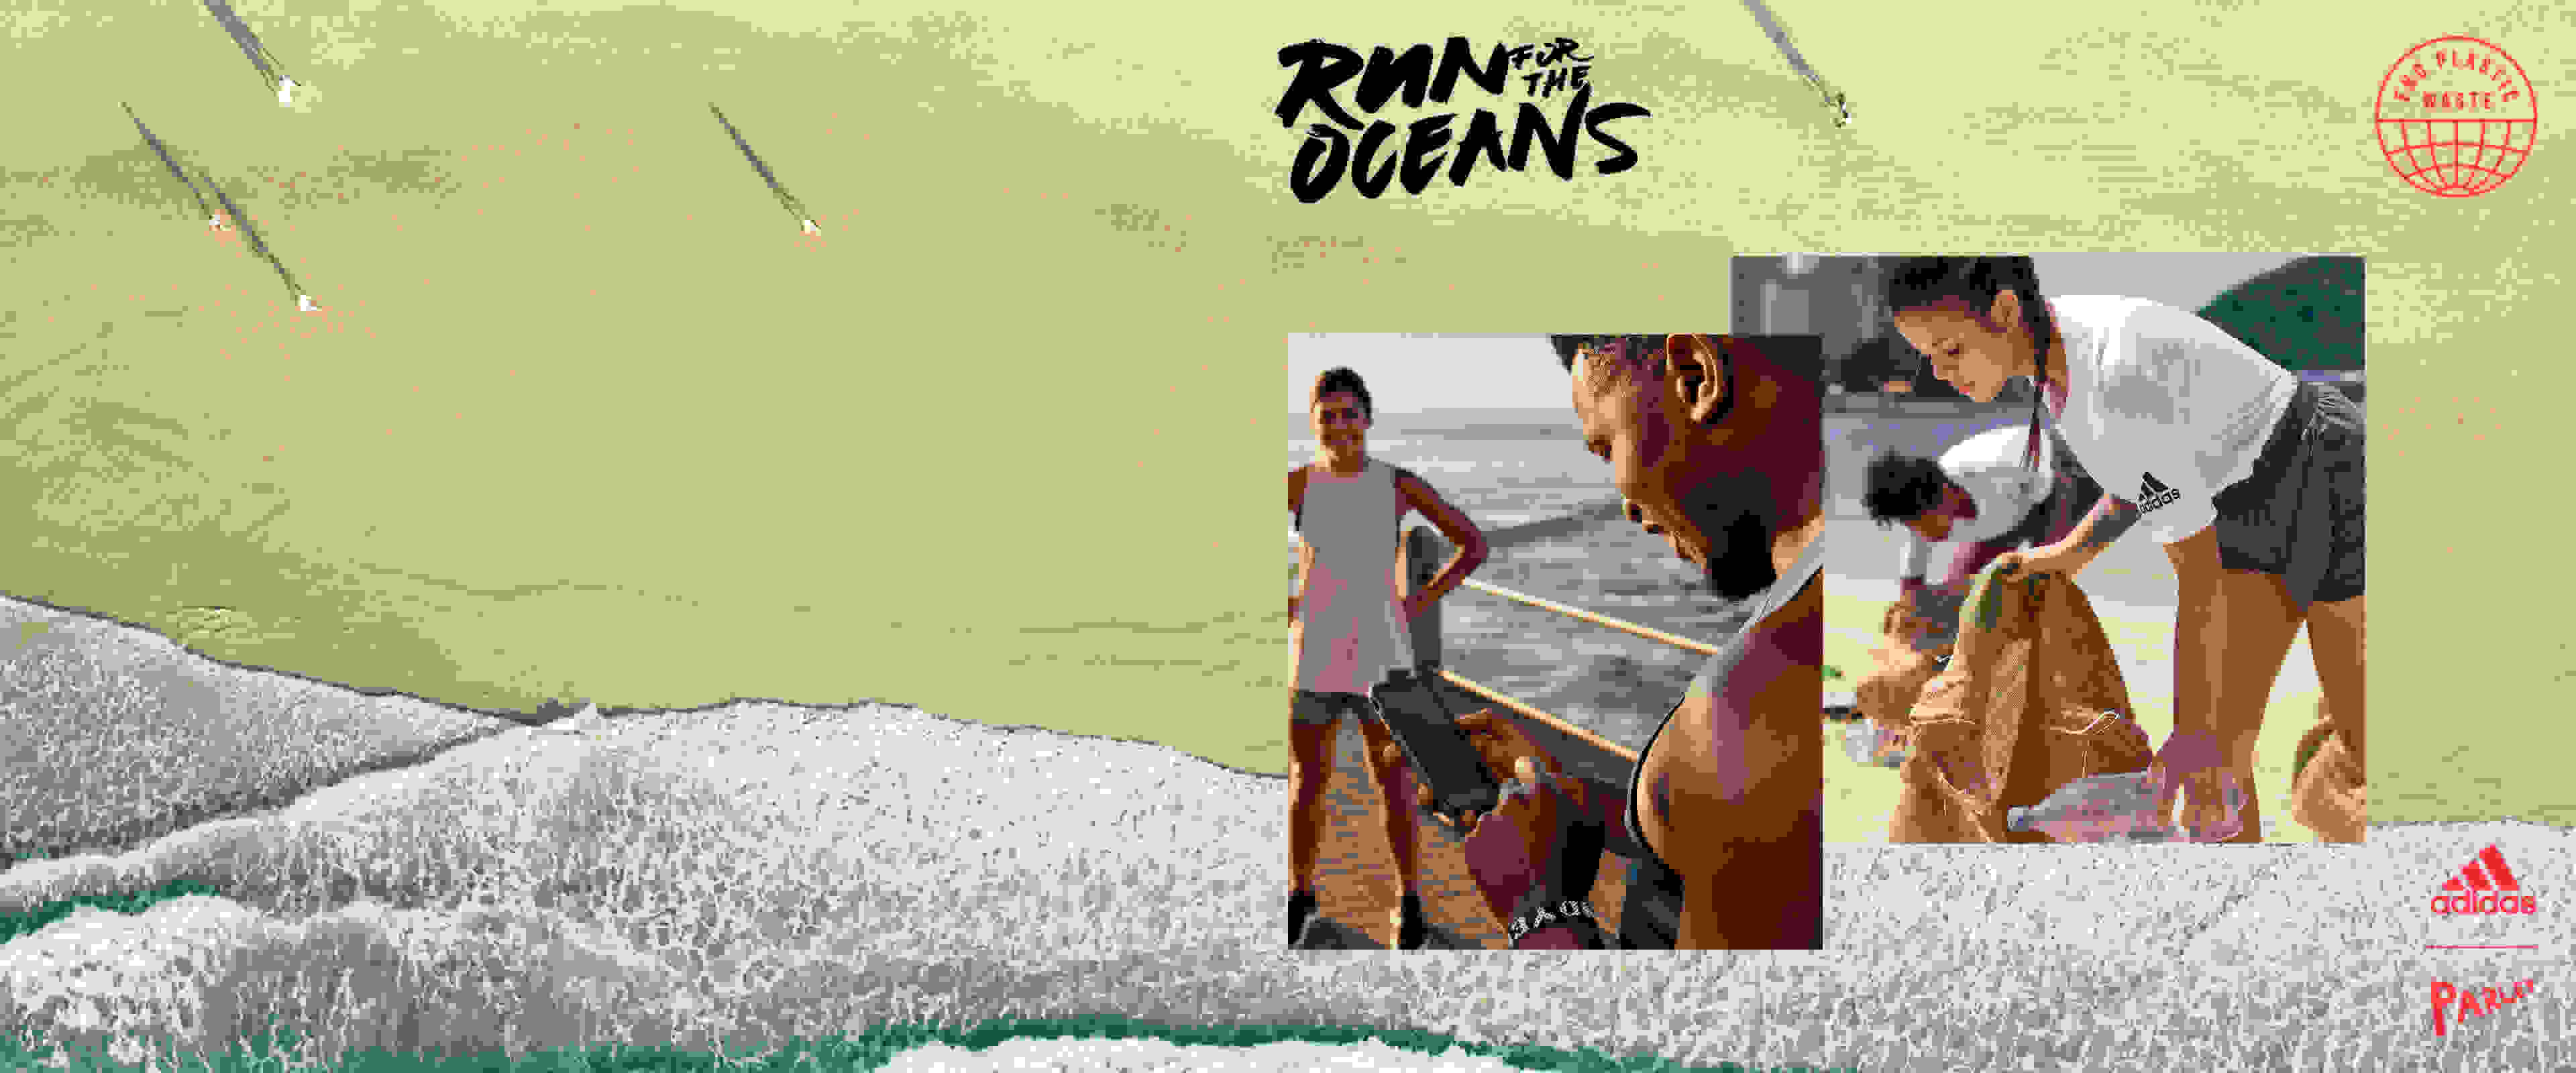 A woman is picking up plastic waste on the beach and a man is downloading the adidas Running app to join Run For The Oceans